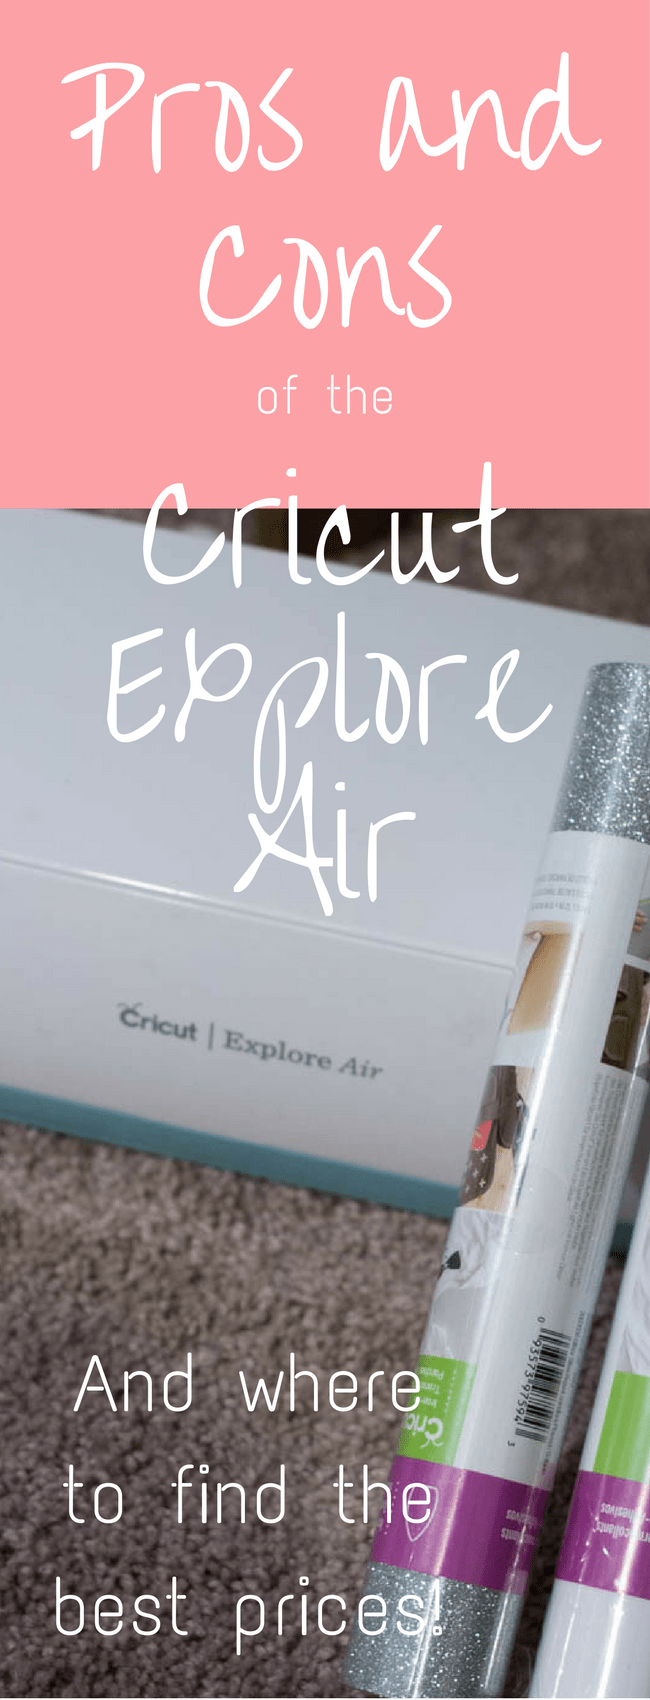 Pros and Cons of the Cricut Explore Air: A great guide if you are considering buying a Cricut! via @clarkscondensed